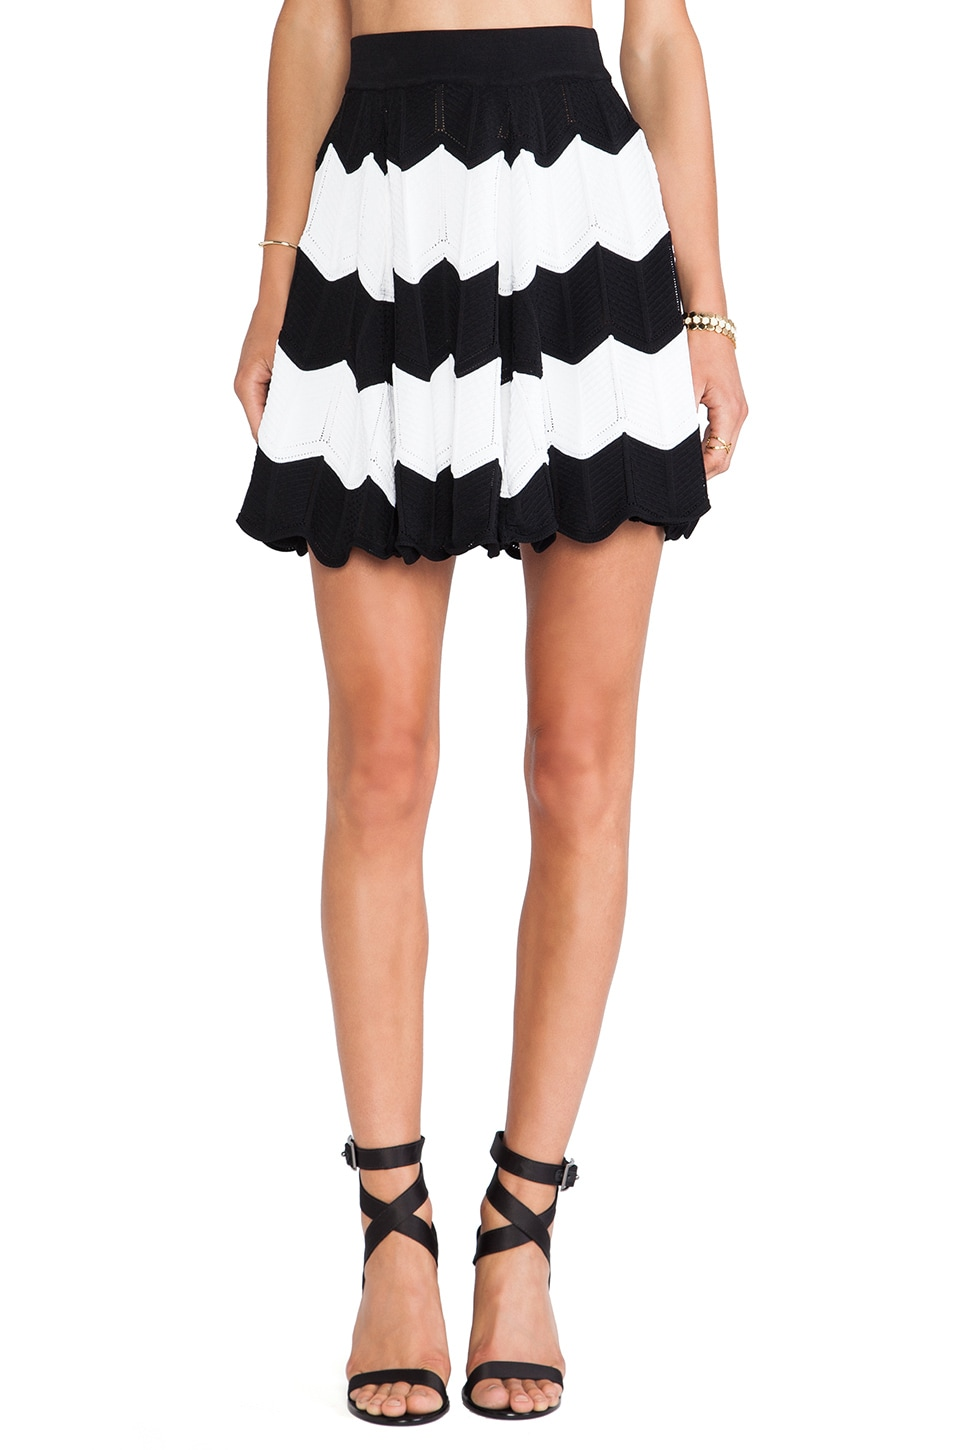 Torn by Ronny Kobo Anabella Skirt in Black & White